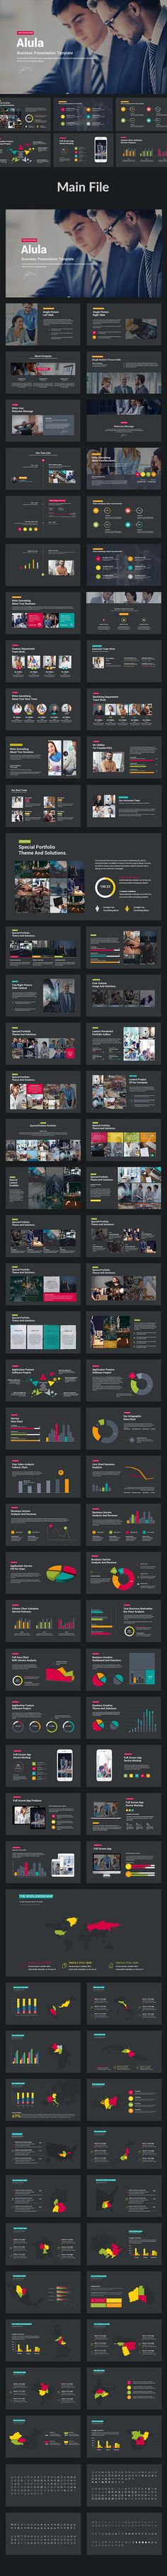 Alula  Business Powerpoint Template — Powerpoint PPT #excel #stats • Download ➝ https://graphicriver.net/item/alula-business-powerpoint-template/19773128?ref=pxcr